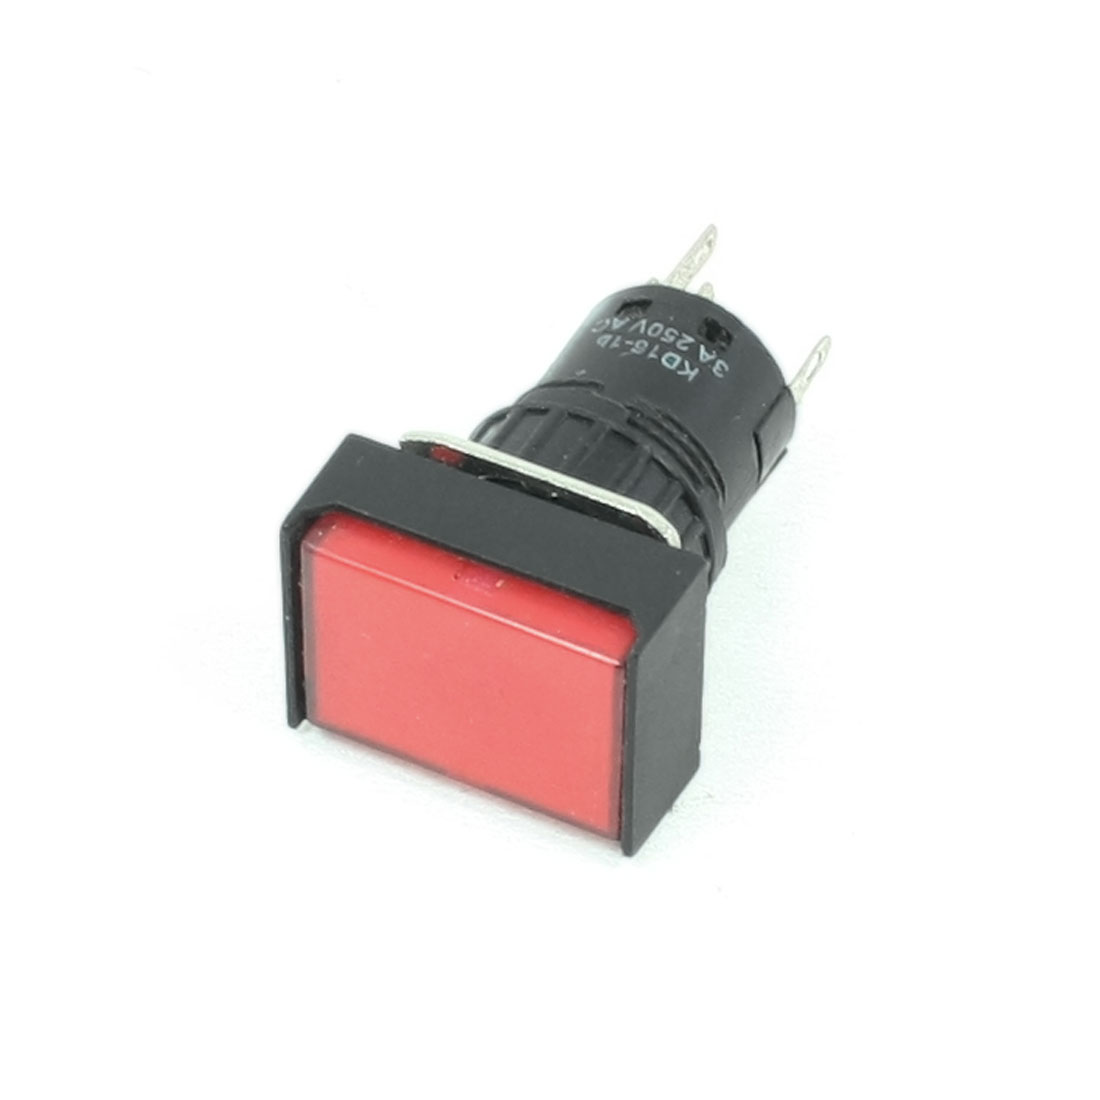 AC 250V 3A Red Lamp Light Panel Latching Rectangle 16mm Push Button Switch